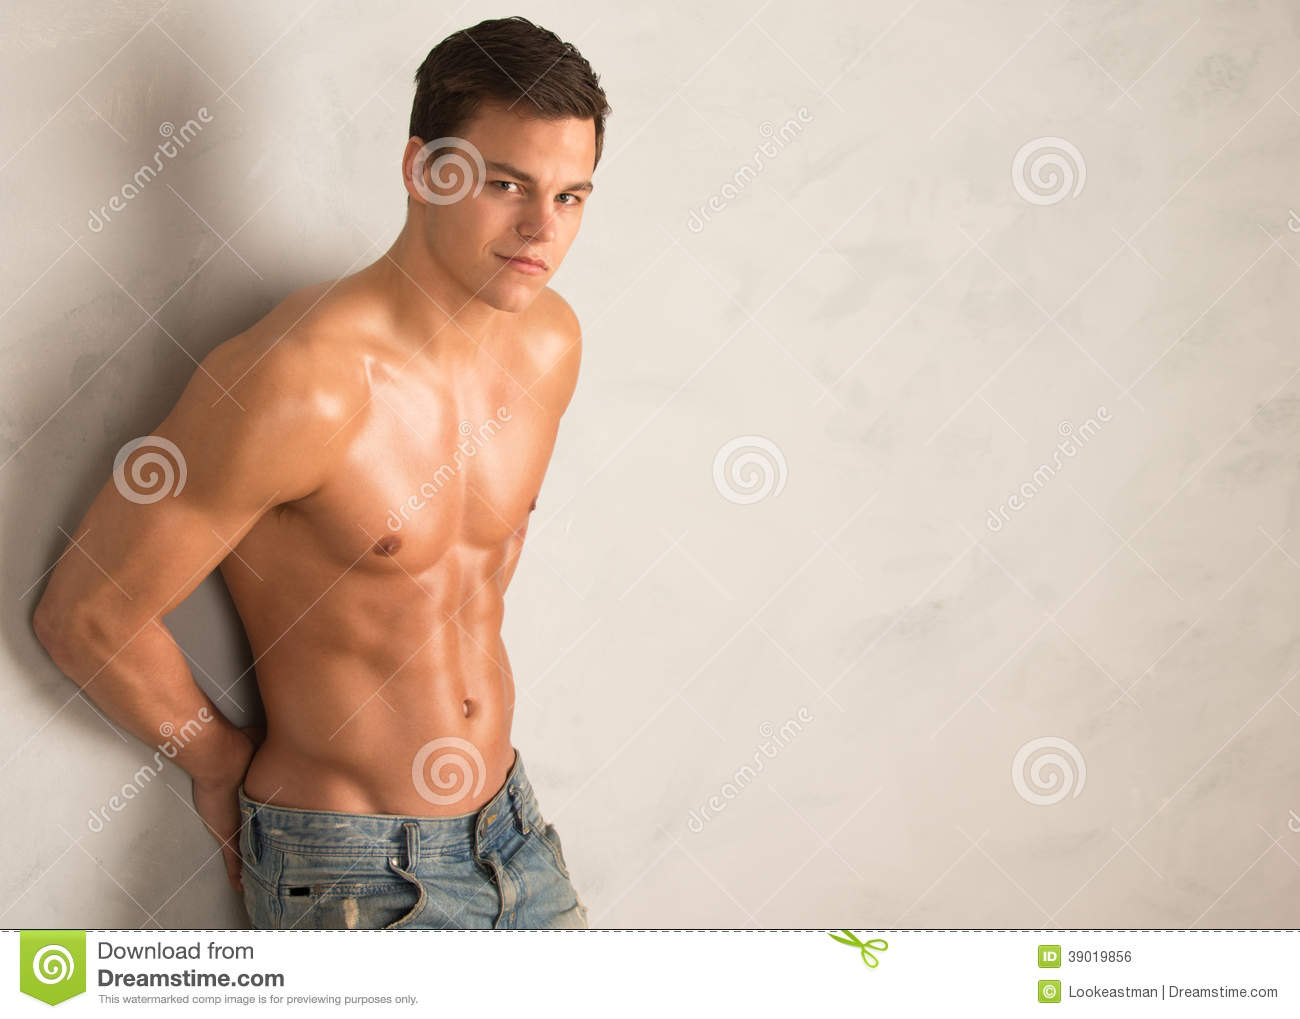 young shredded man against a wall stock image image of looking